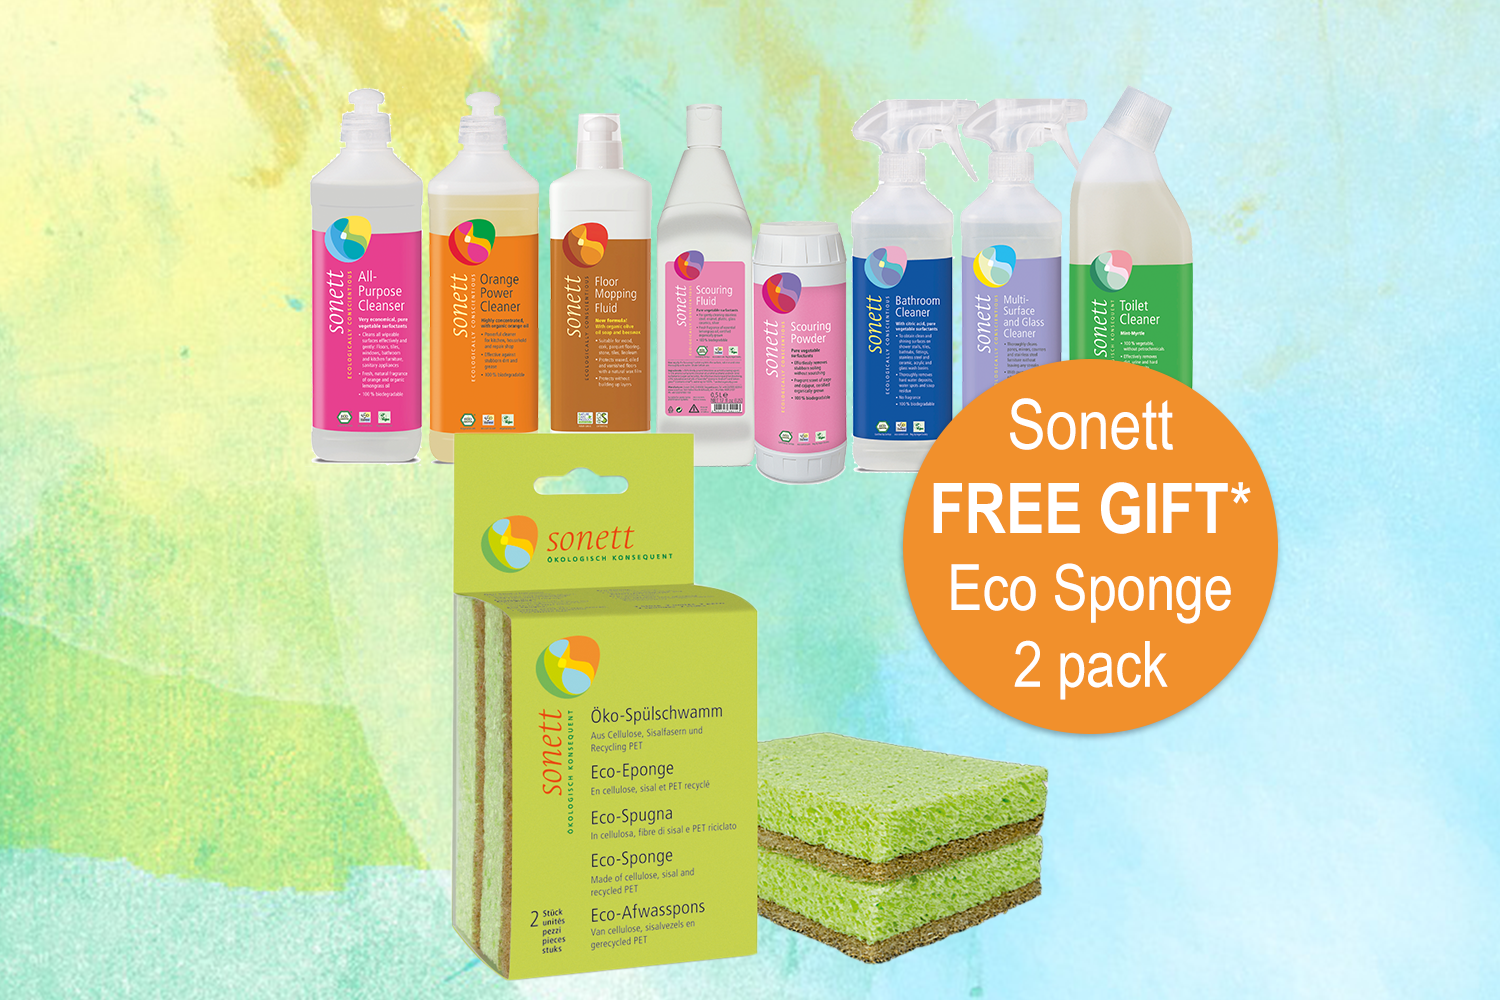 "Sonett FREE GIFT Eco Sponge 2 pack value $7.95 - Buy 2 products from the Sonett ""Cleaning Range"" and receive a FREE 2 pack Eco-Sponge as a gift. Type SONETTECOSPONGE in the Additional Information box during checkout.Offer available until 31st October and while stock lasts."